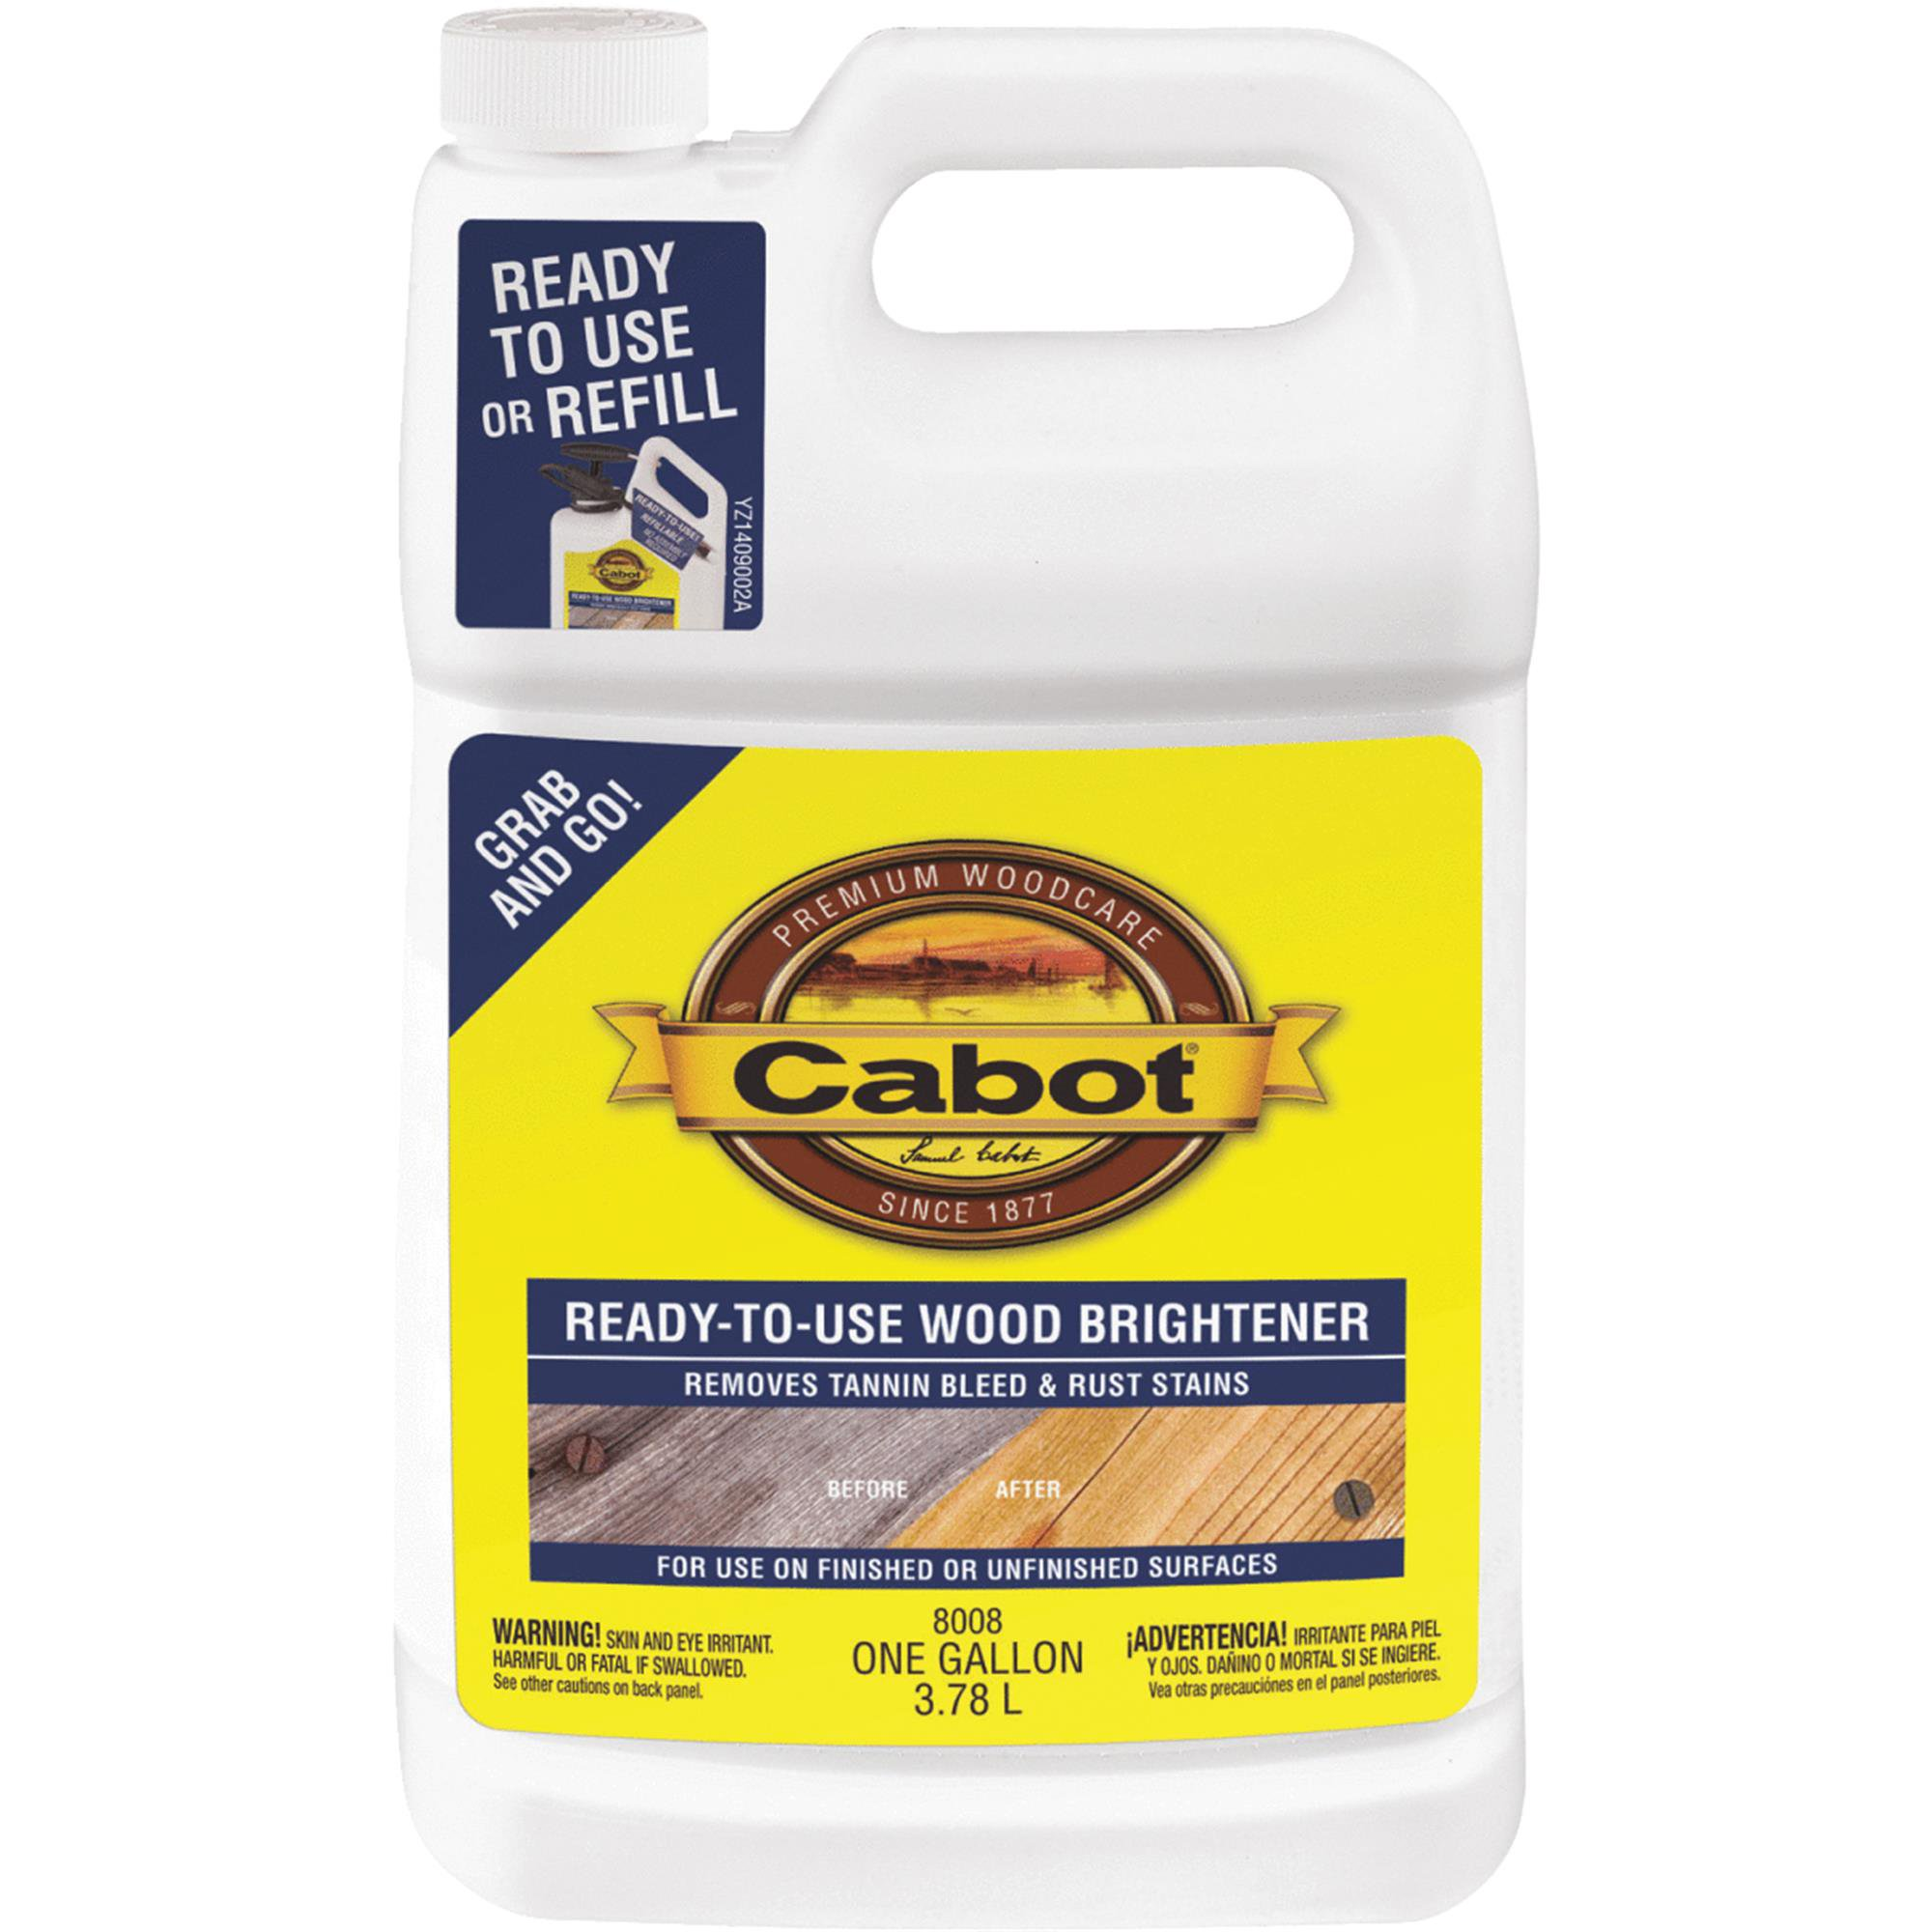 Cabot Ready-To-Use Wood Brightener